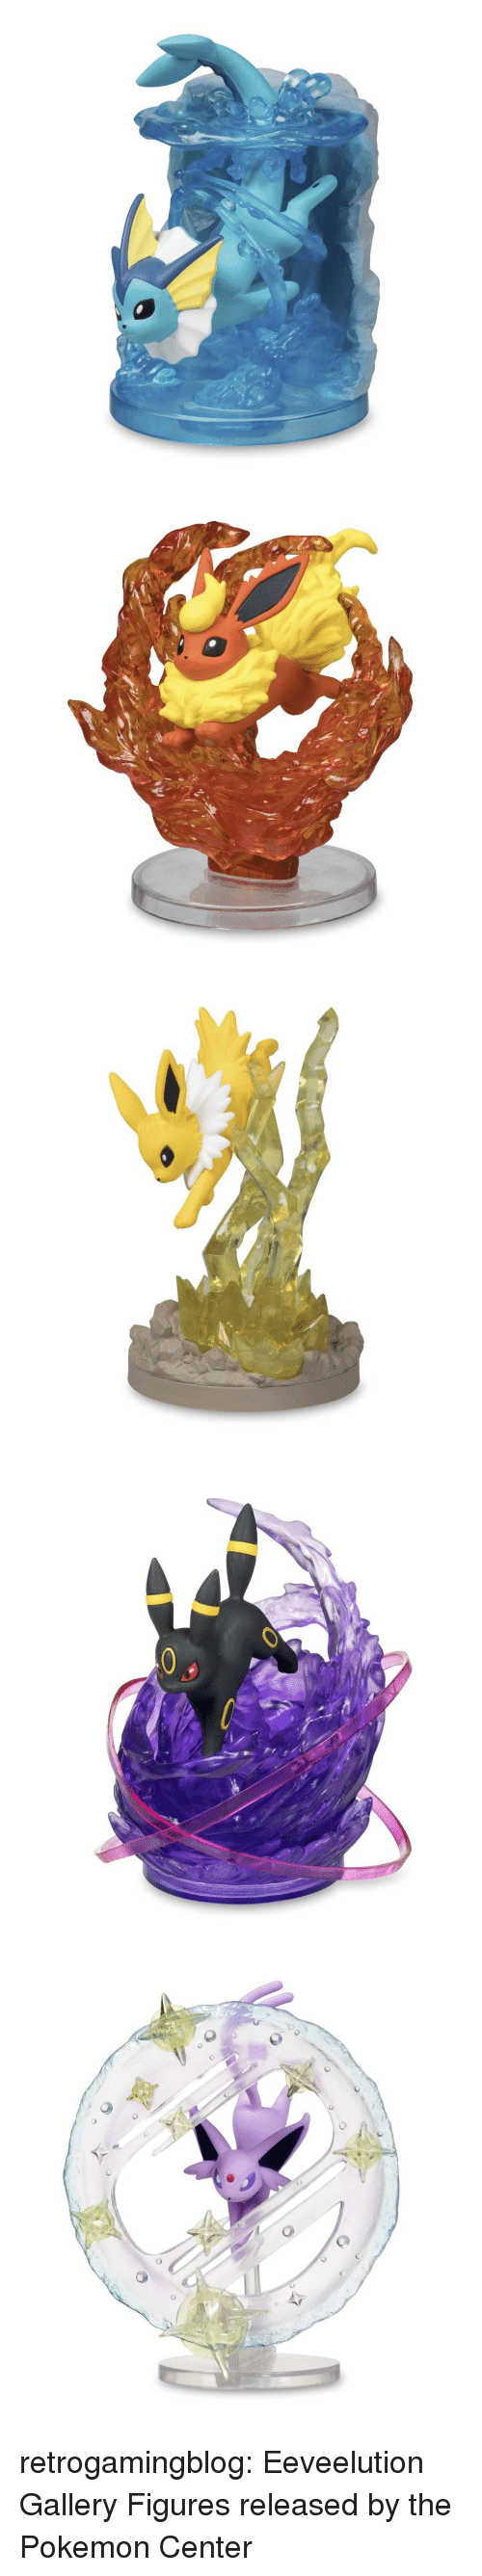 Pokemon, Tumblr, and Blog: retrogamingblog:  Eeveelution Gallery Figures released by the Pokemon Center